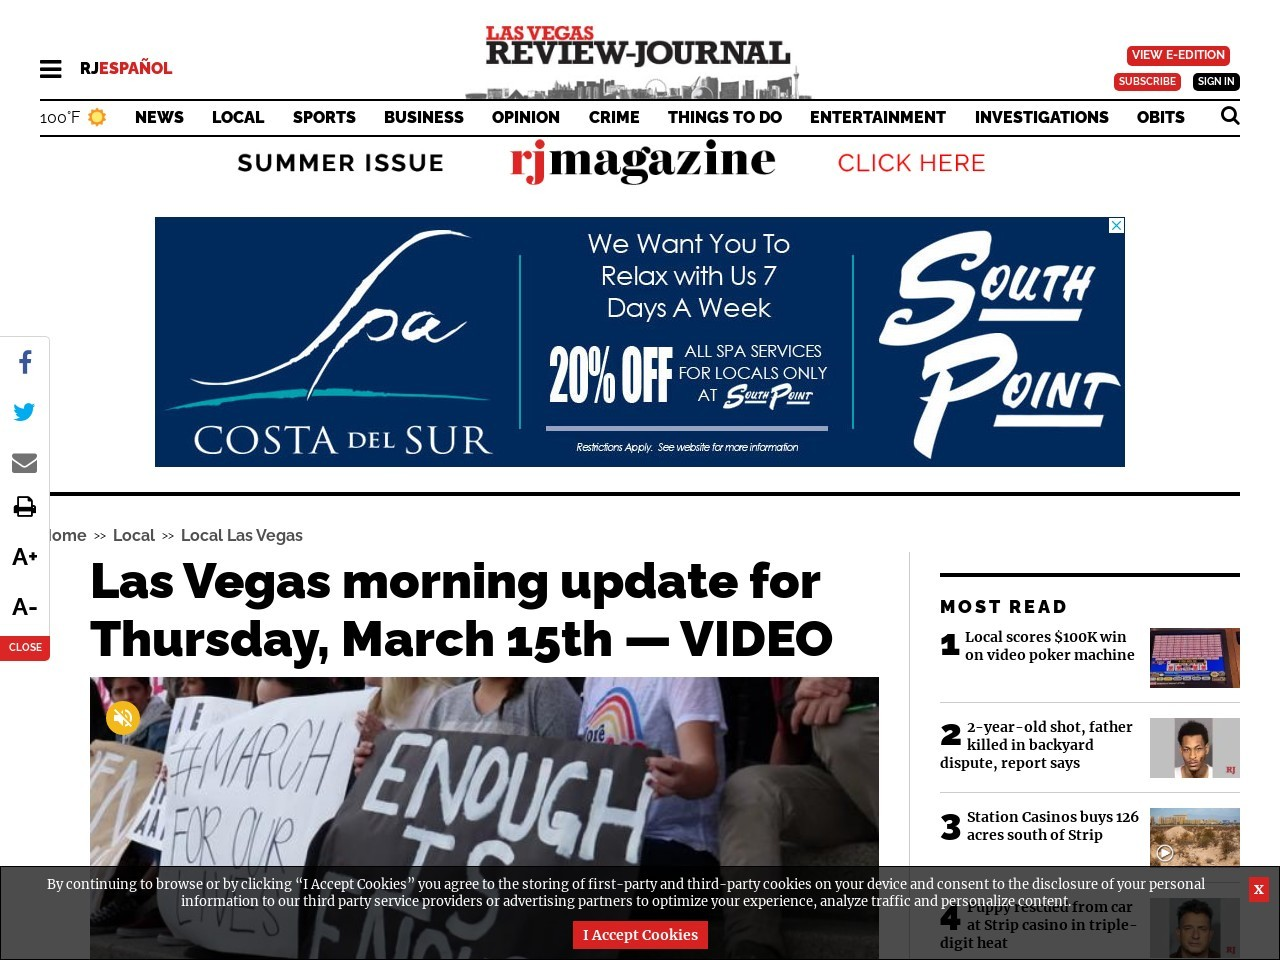 Las Vegas morning update for Thursday, March 15th — VIDEO